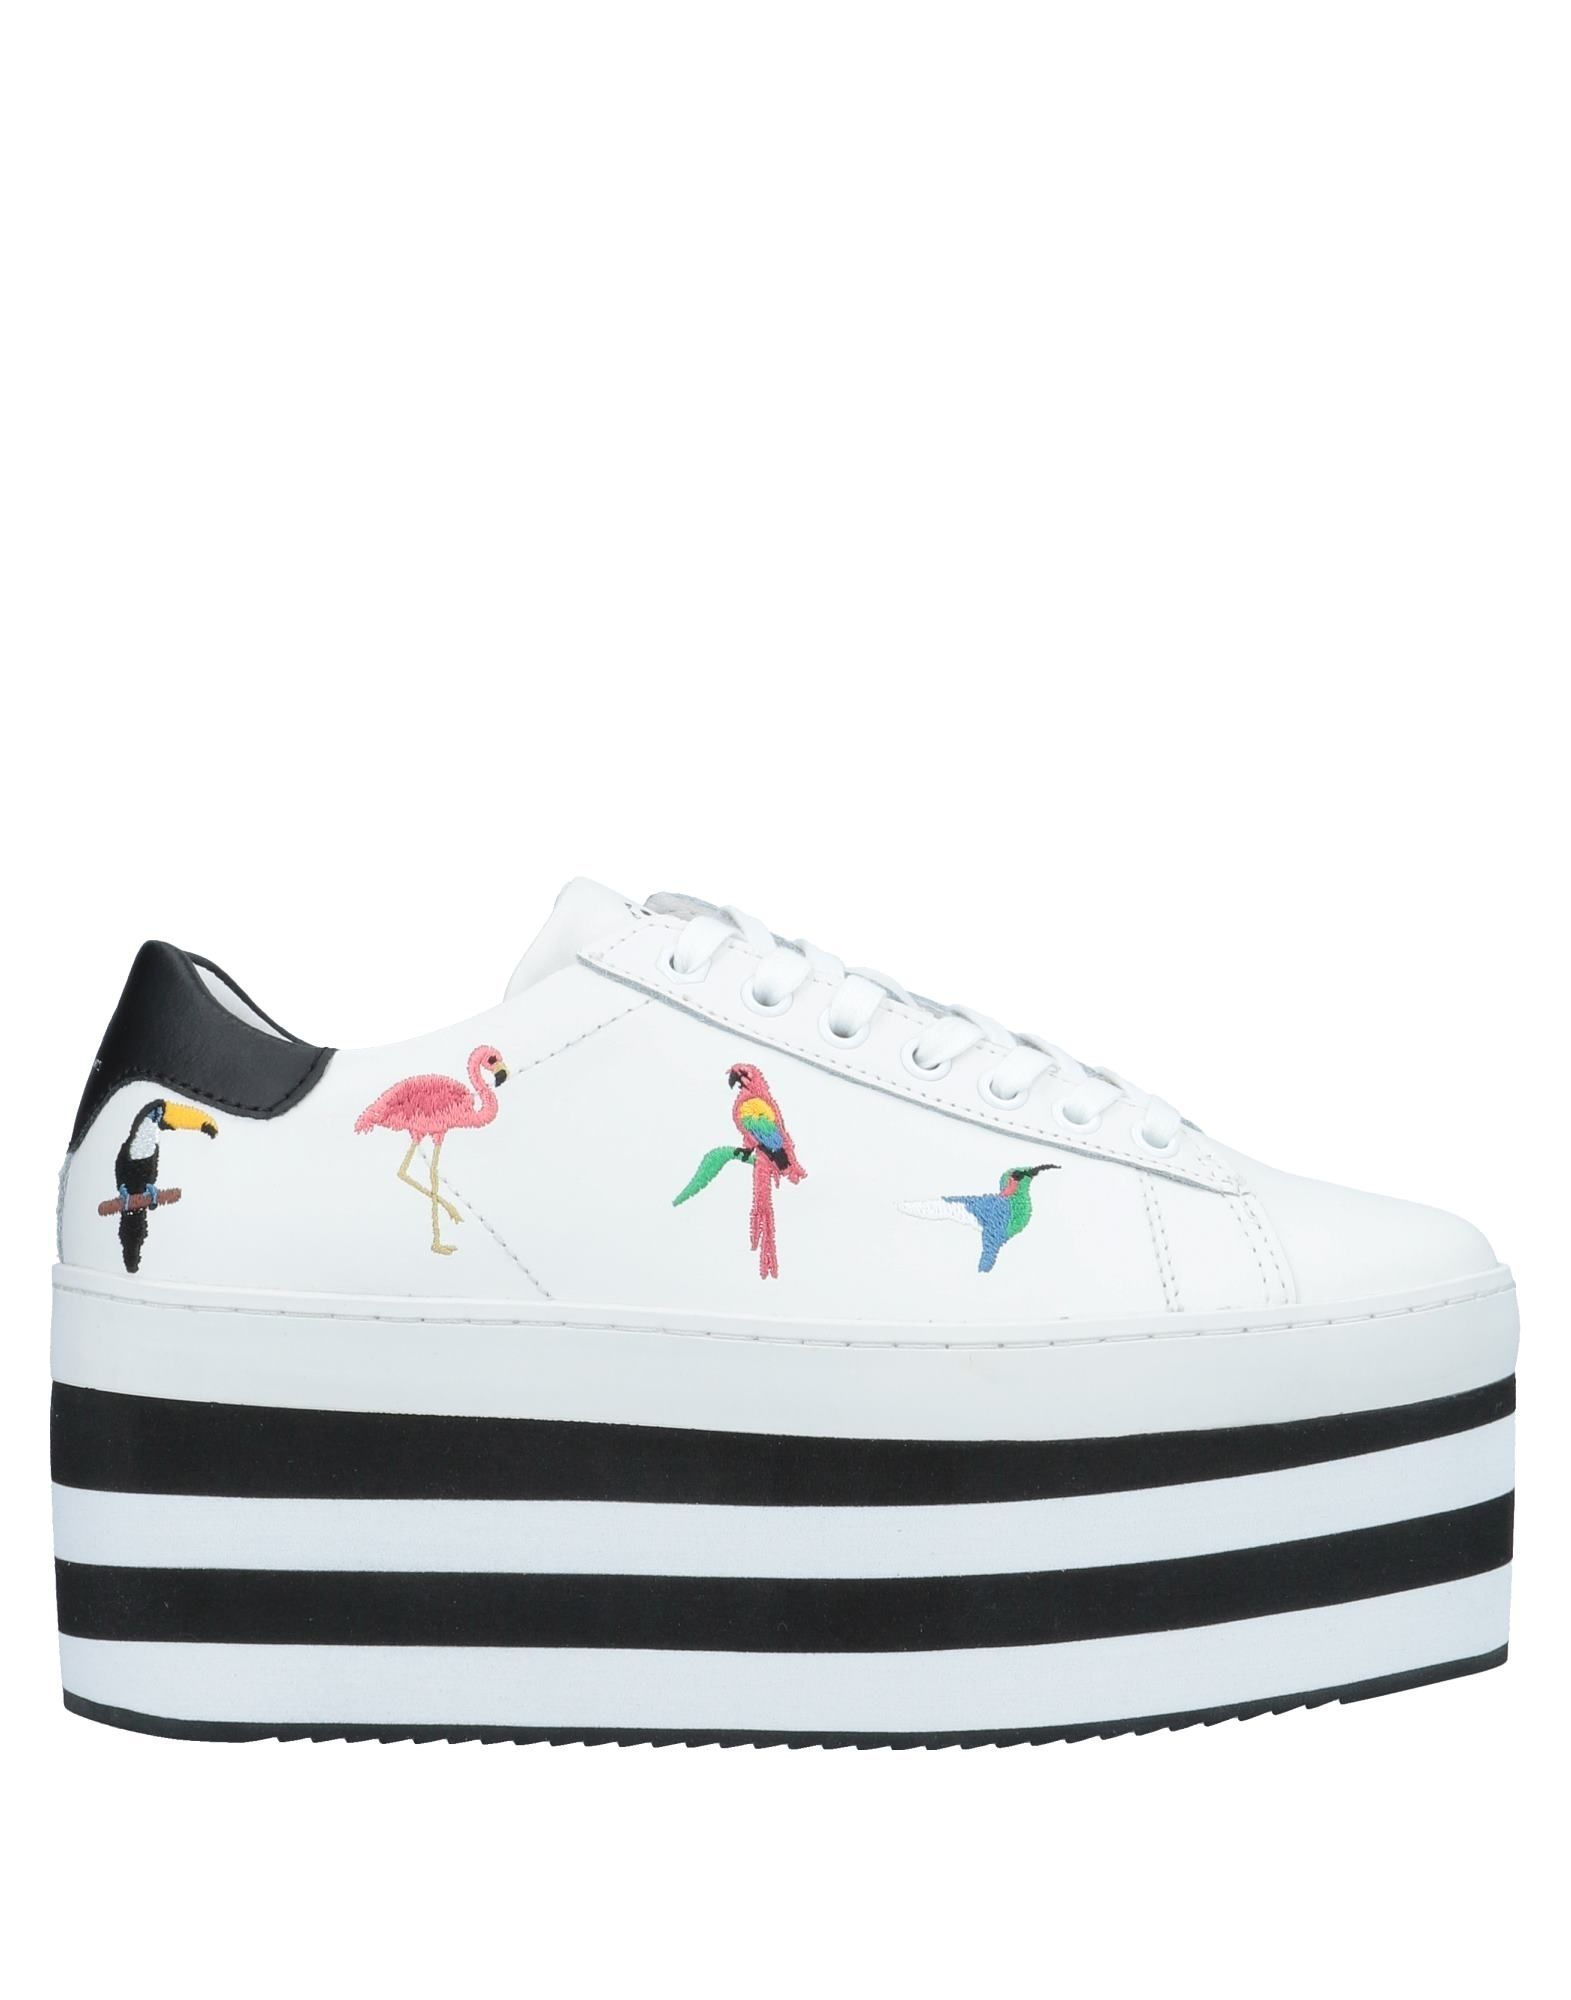 Moa Master Of Of Of Arts Sneakers - Women Moa Master Of Arts Sneakers online on  Canada - 11581858GQ af4b4f